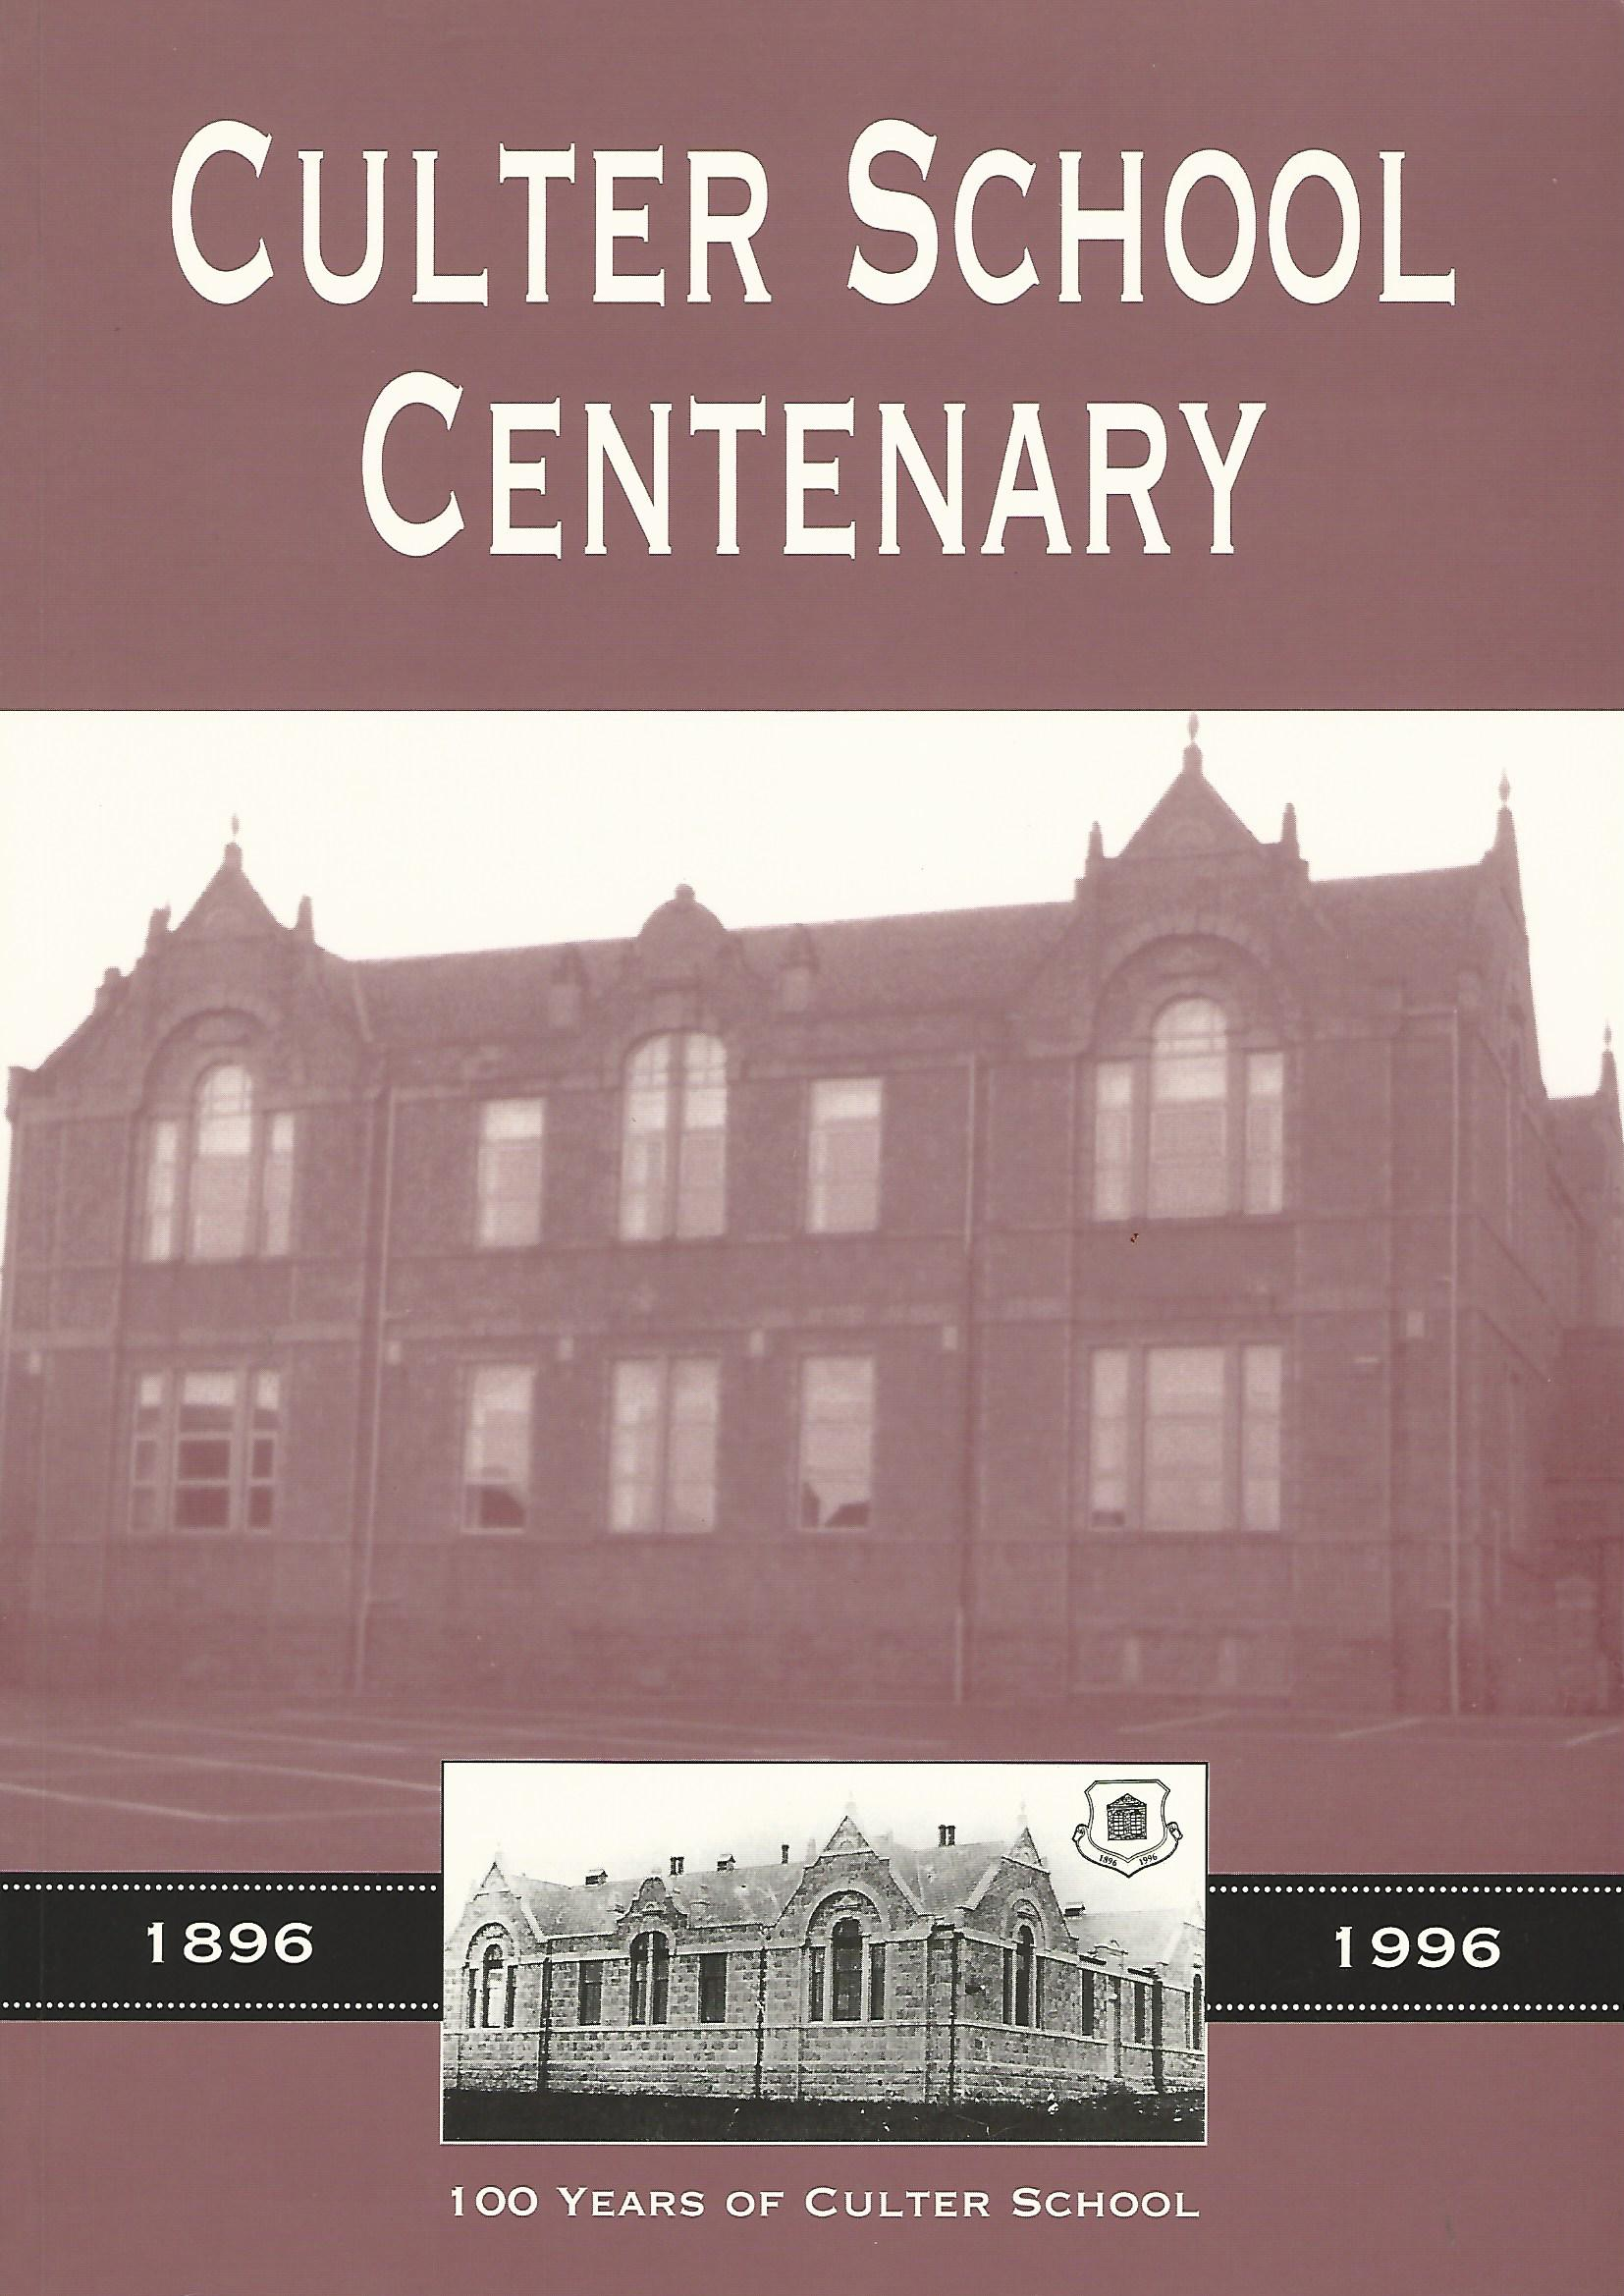 Image for Culter School Centenary: 100 Years of Culter School 1896 - 1996.